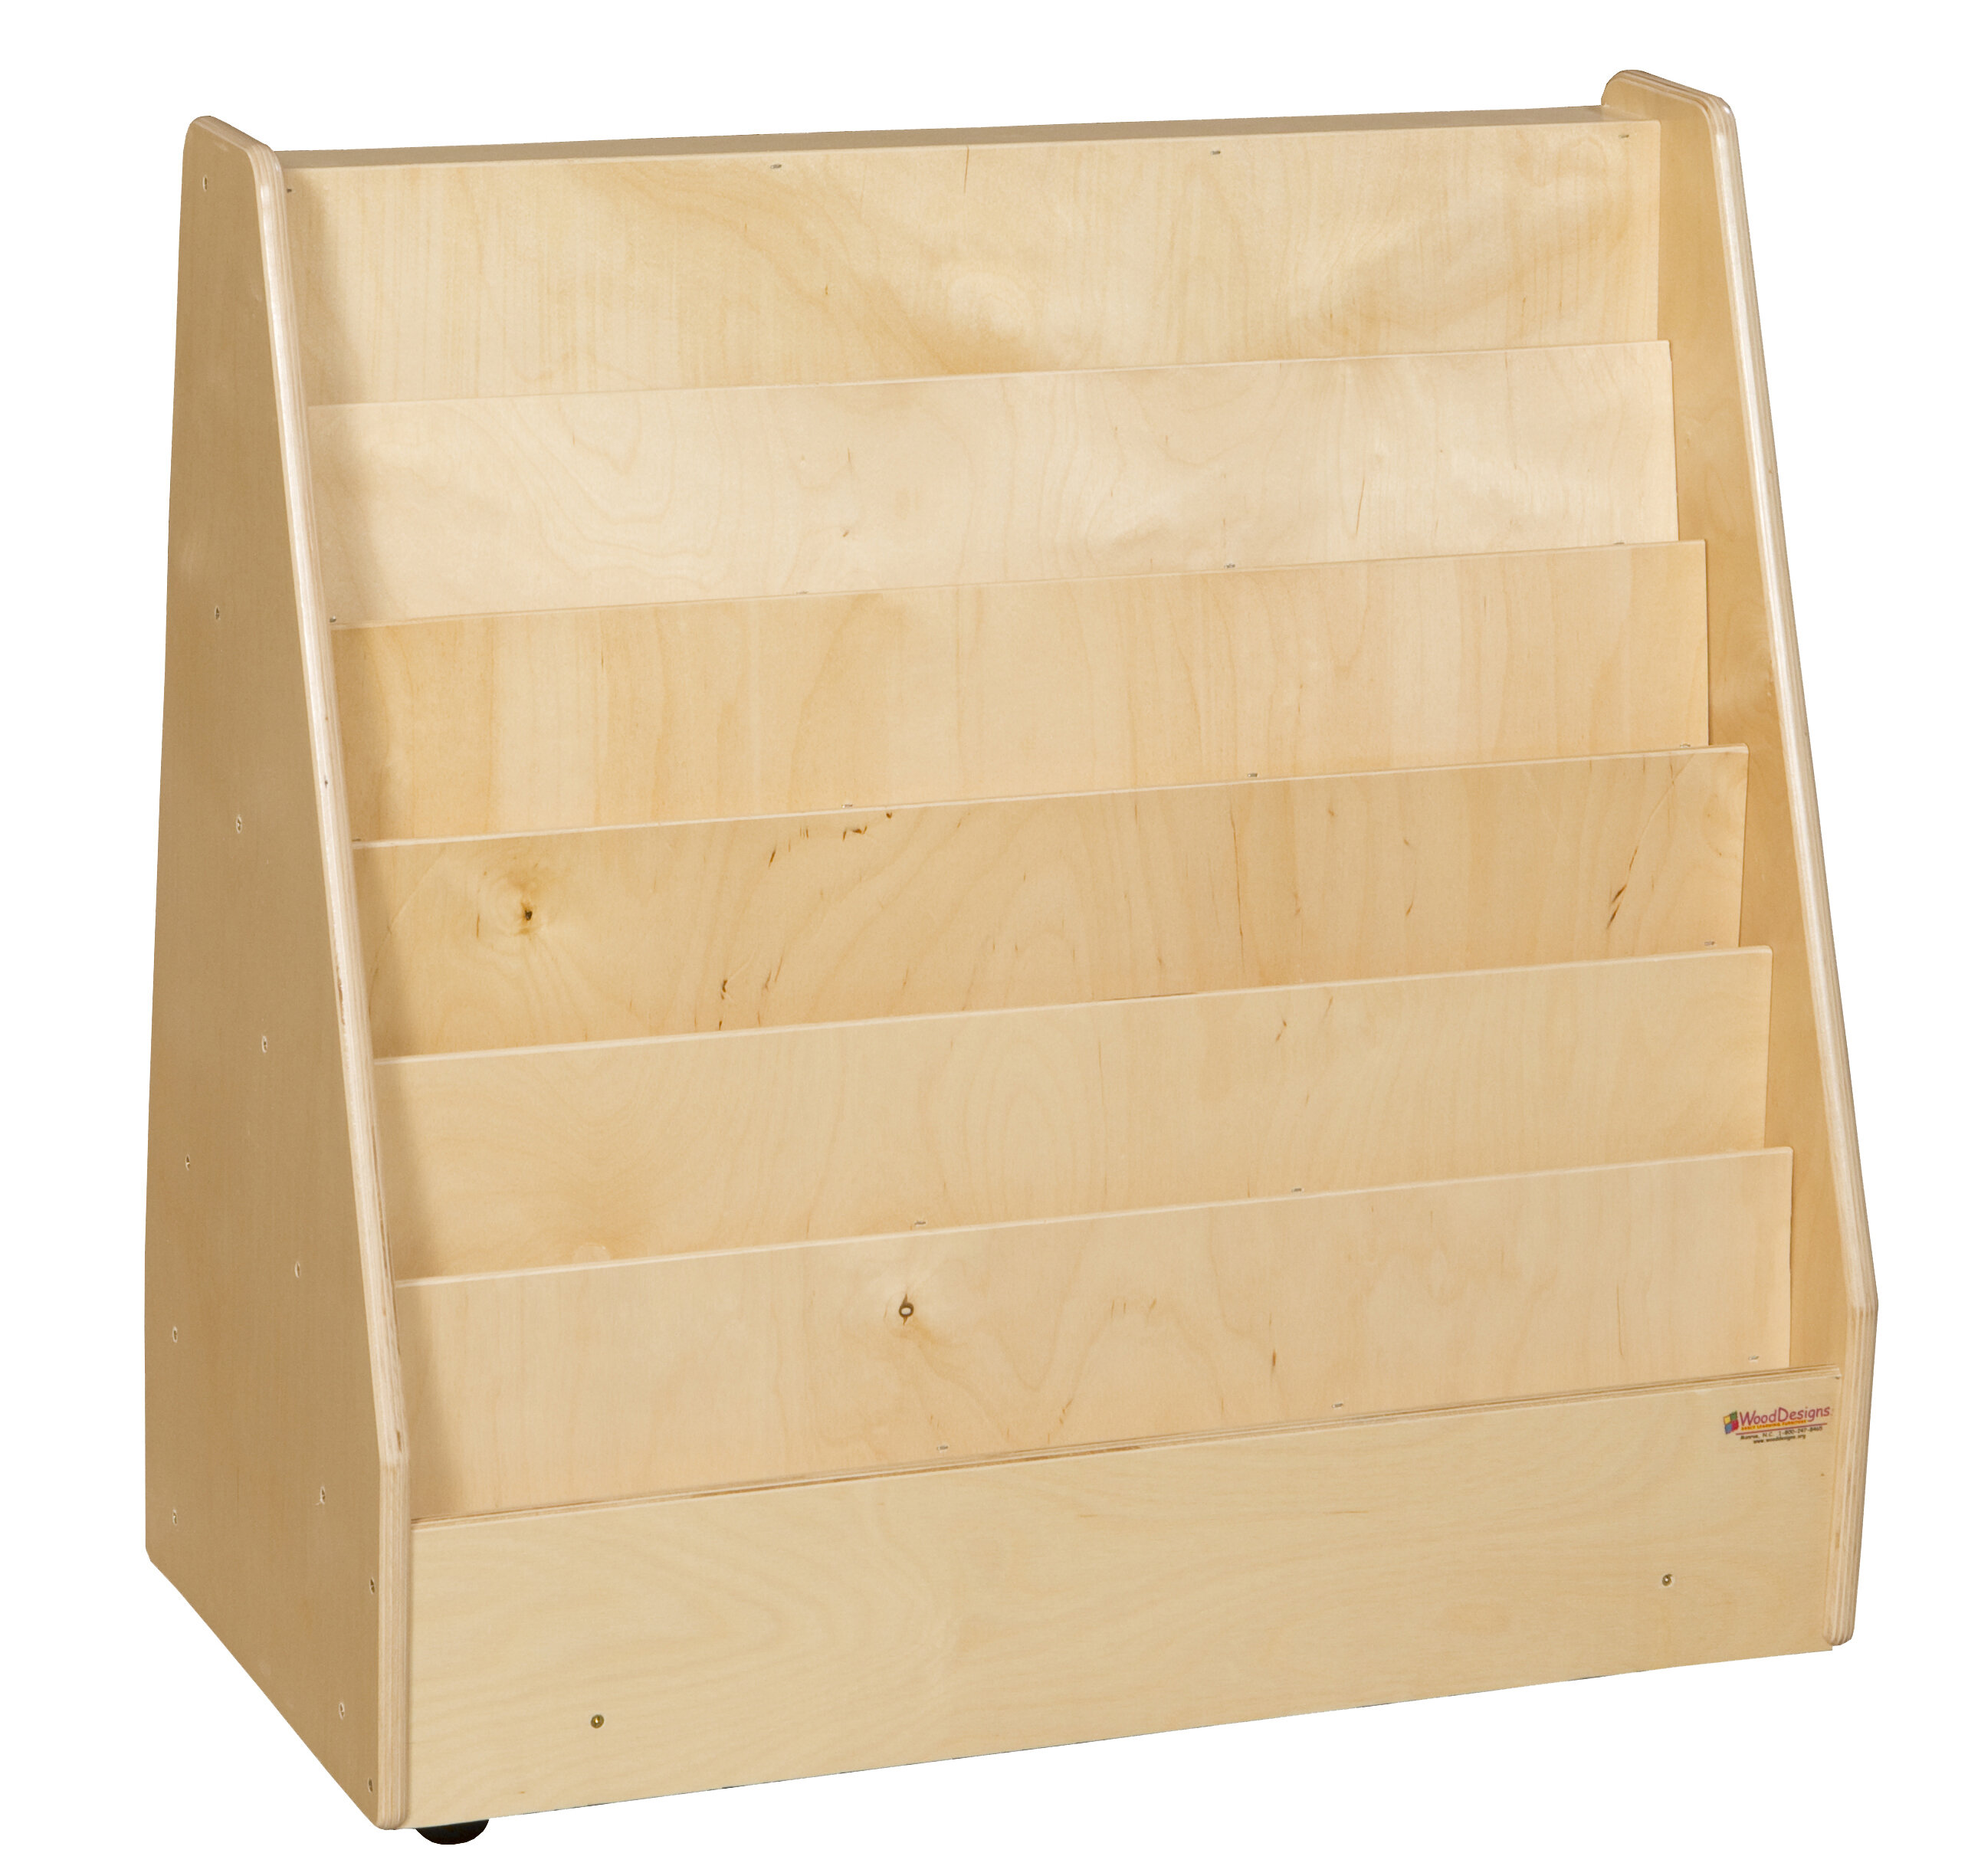 Wood Designs Double Sided 6 Compartment Book Display With Casters Wayfair